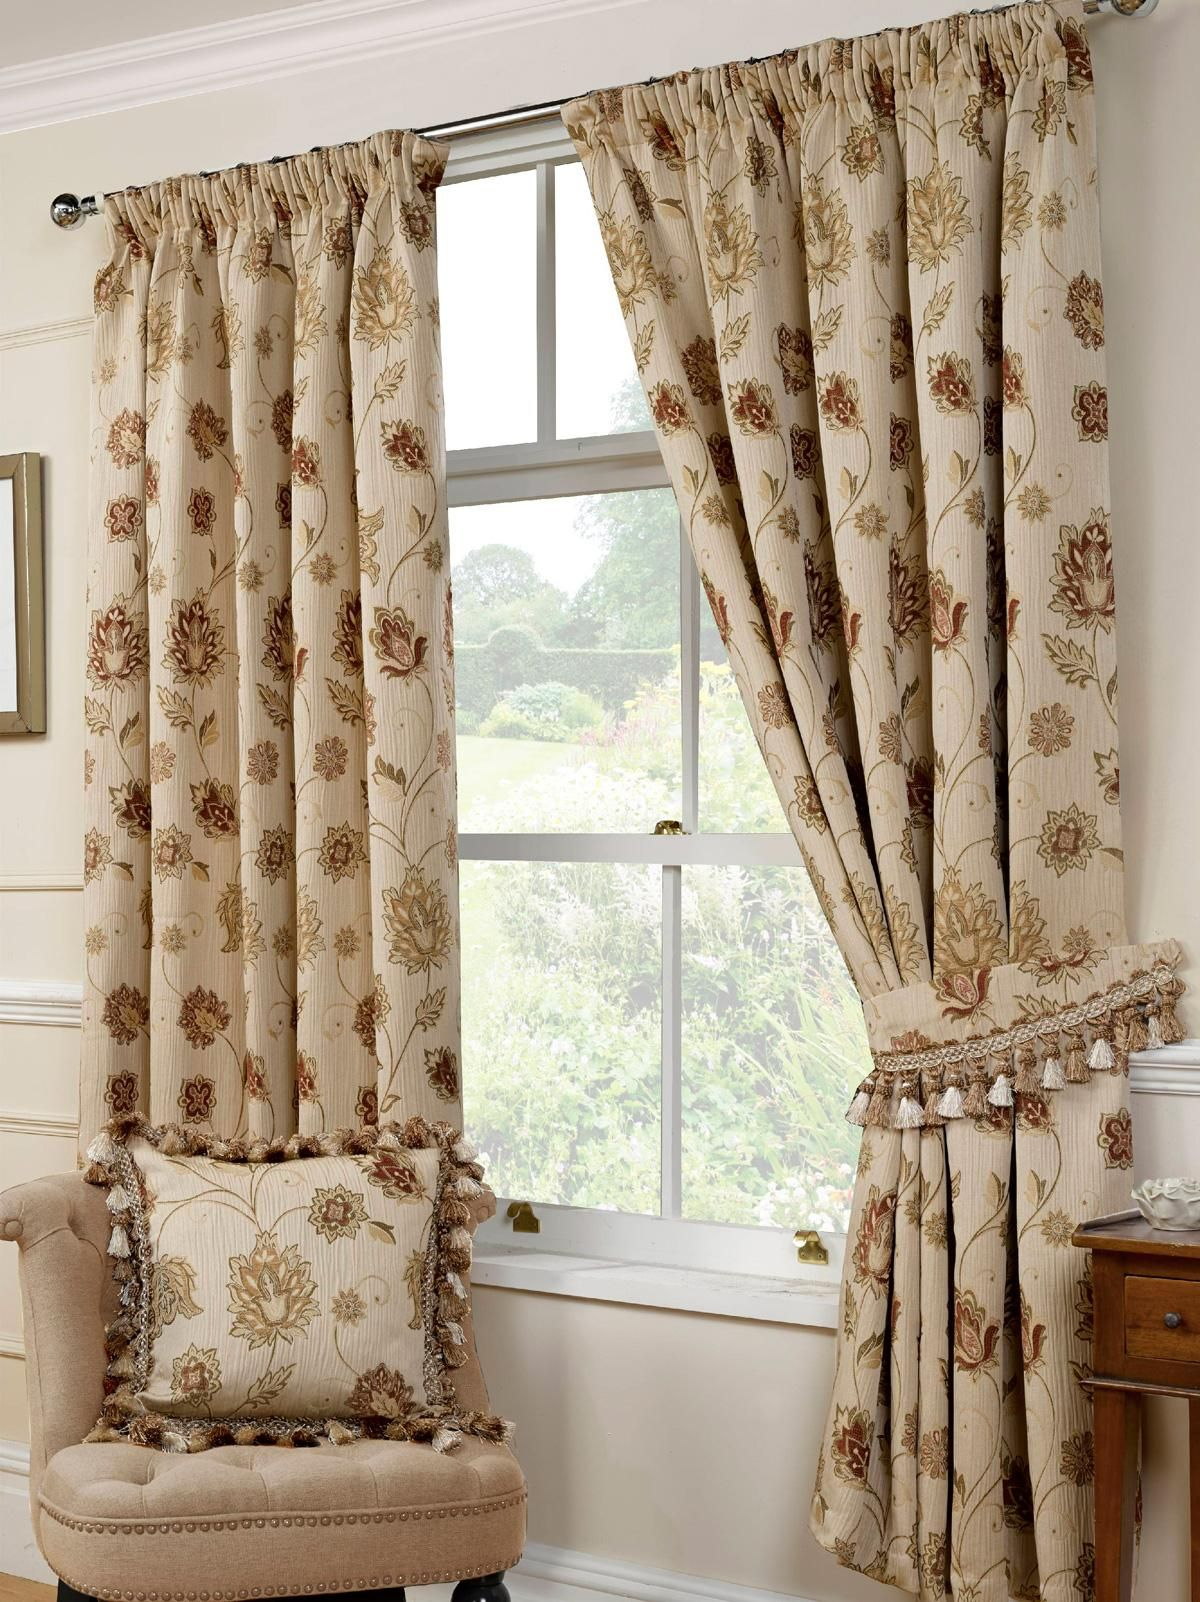 of curtains ring product fabric made striped curtain eyelet house studio ready g olive top campello lined